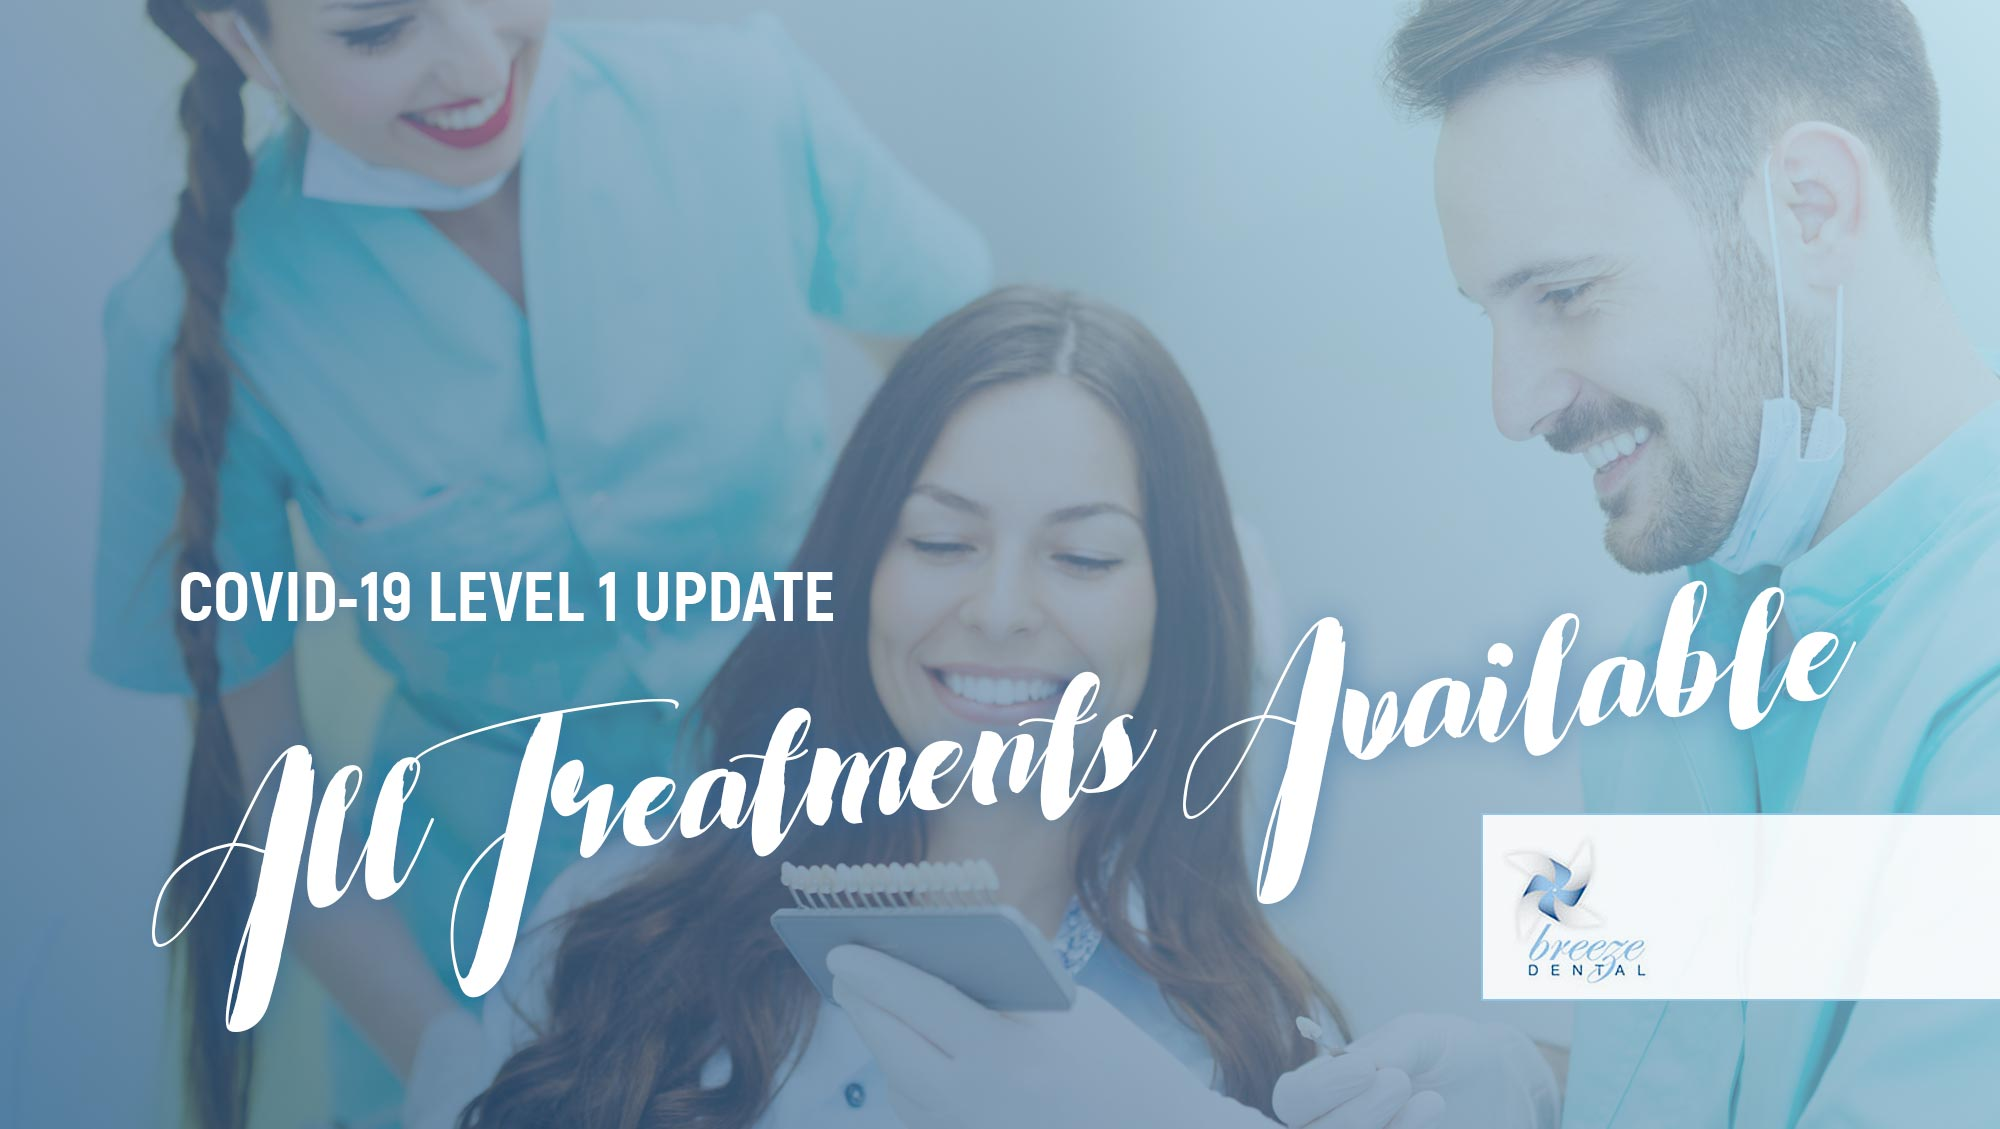 Level 1 Covid 19 Dental Helensvale Update